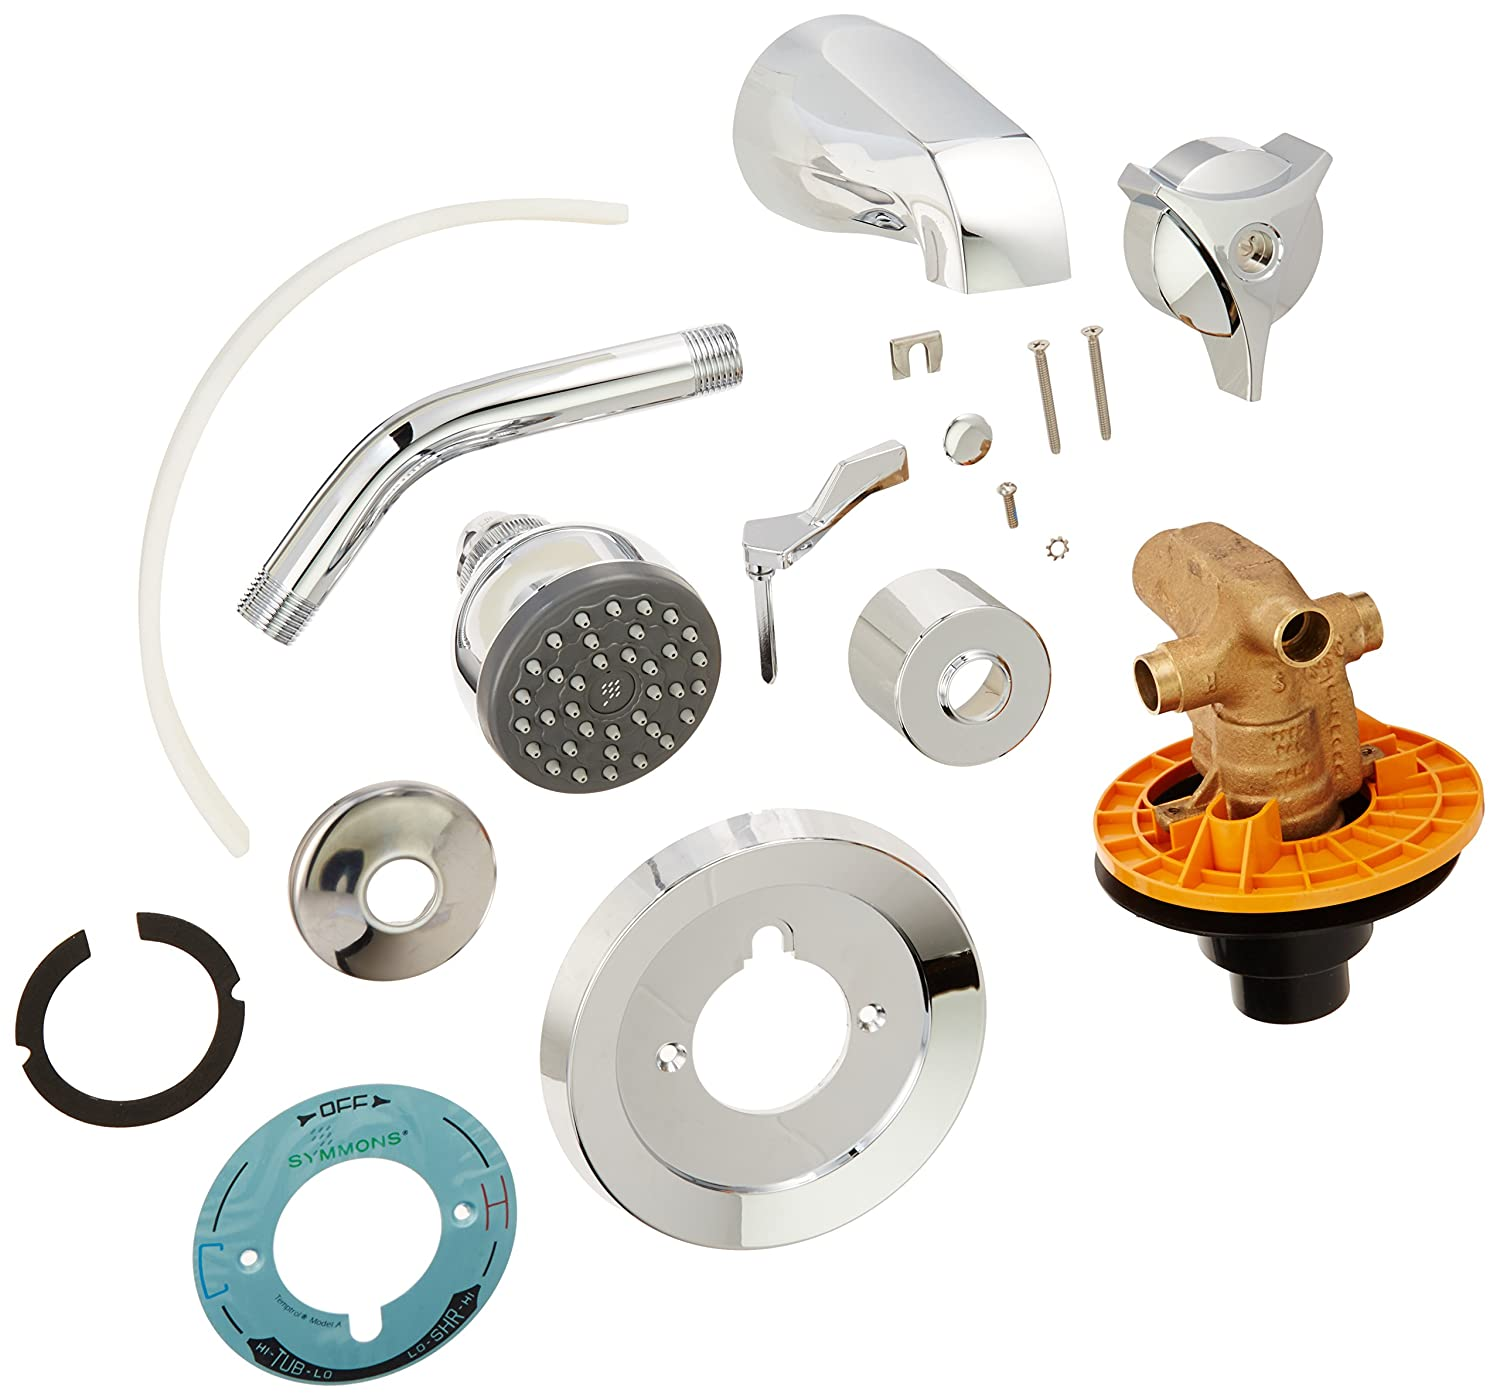 Symmons S-96-2 Temptrol Tub/Shower System - Shower Faucet Set With ...